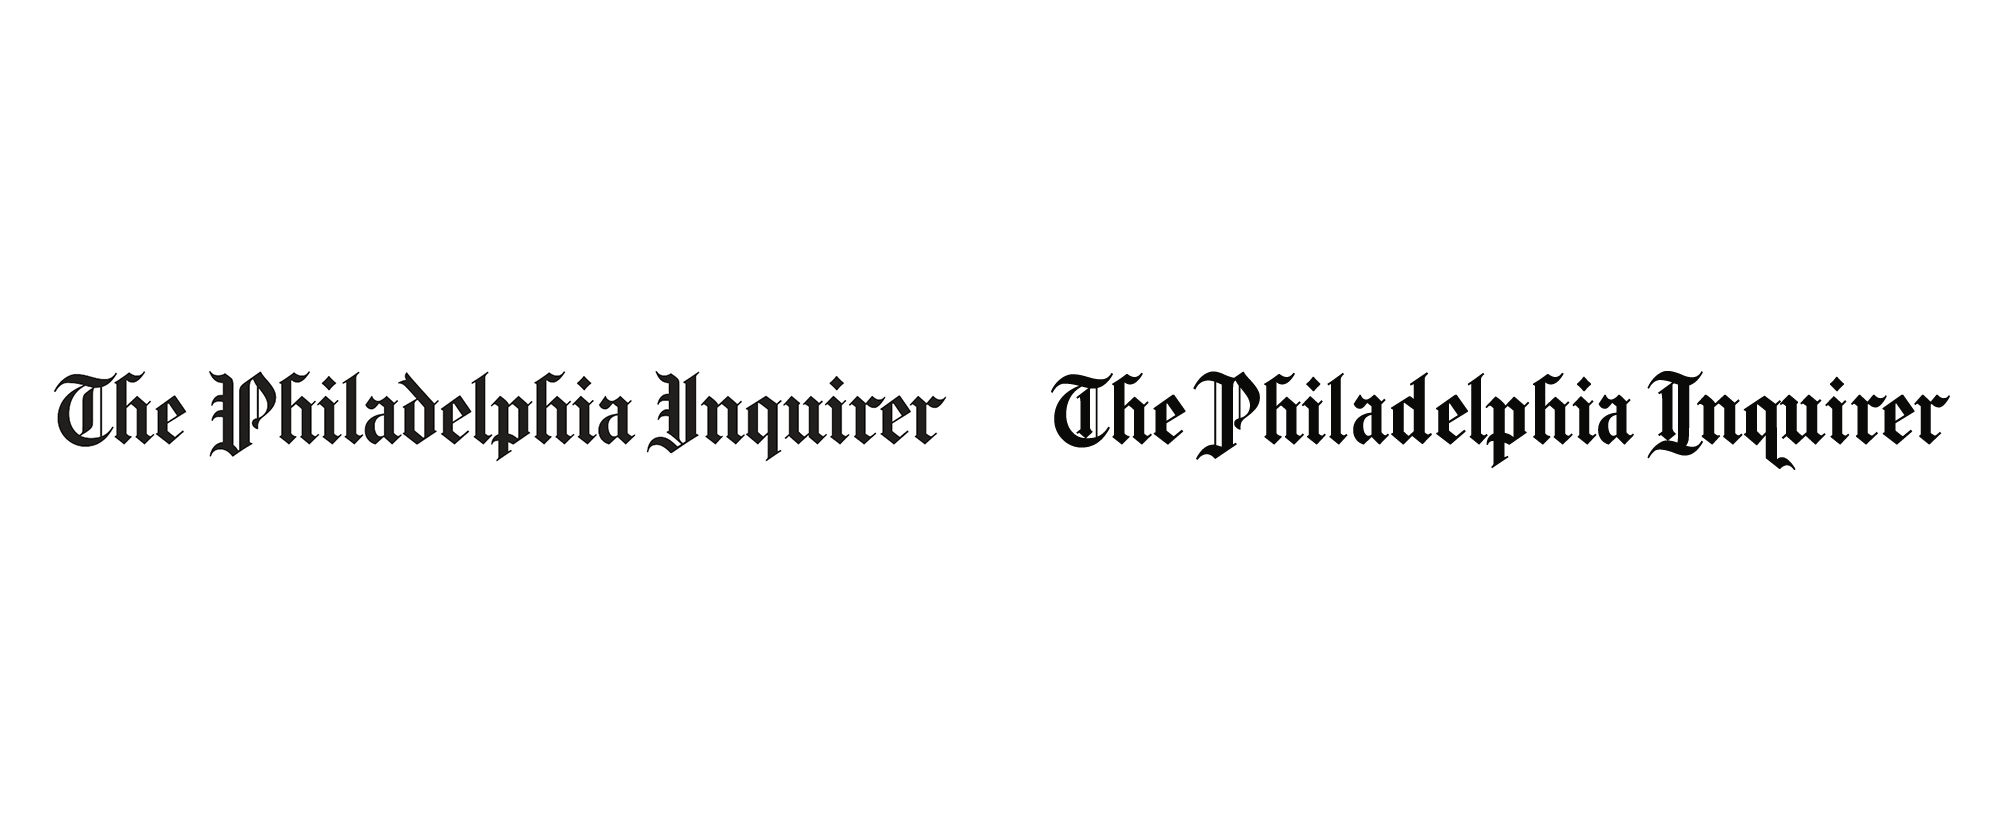 New Logo for The Philadelphia Inquirer done In-house